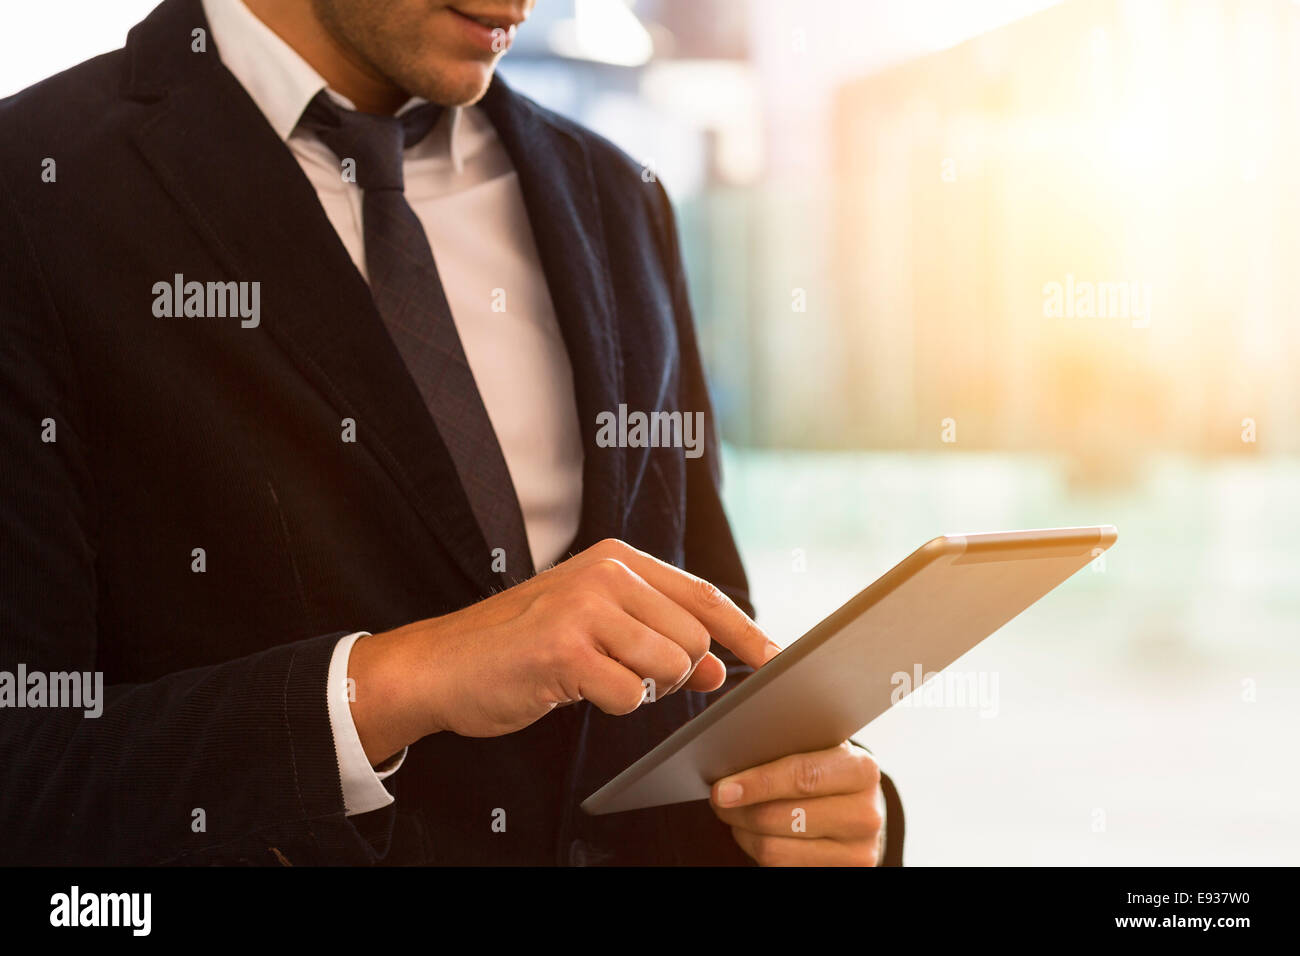 Businessman using Digital Tablet - Stock Image